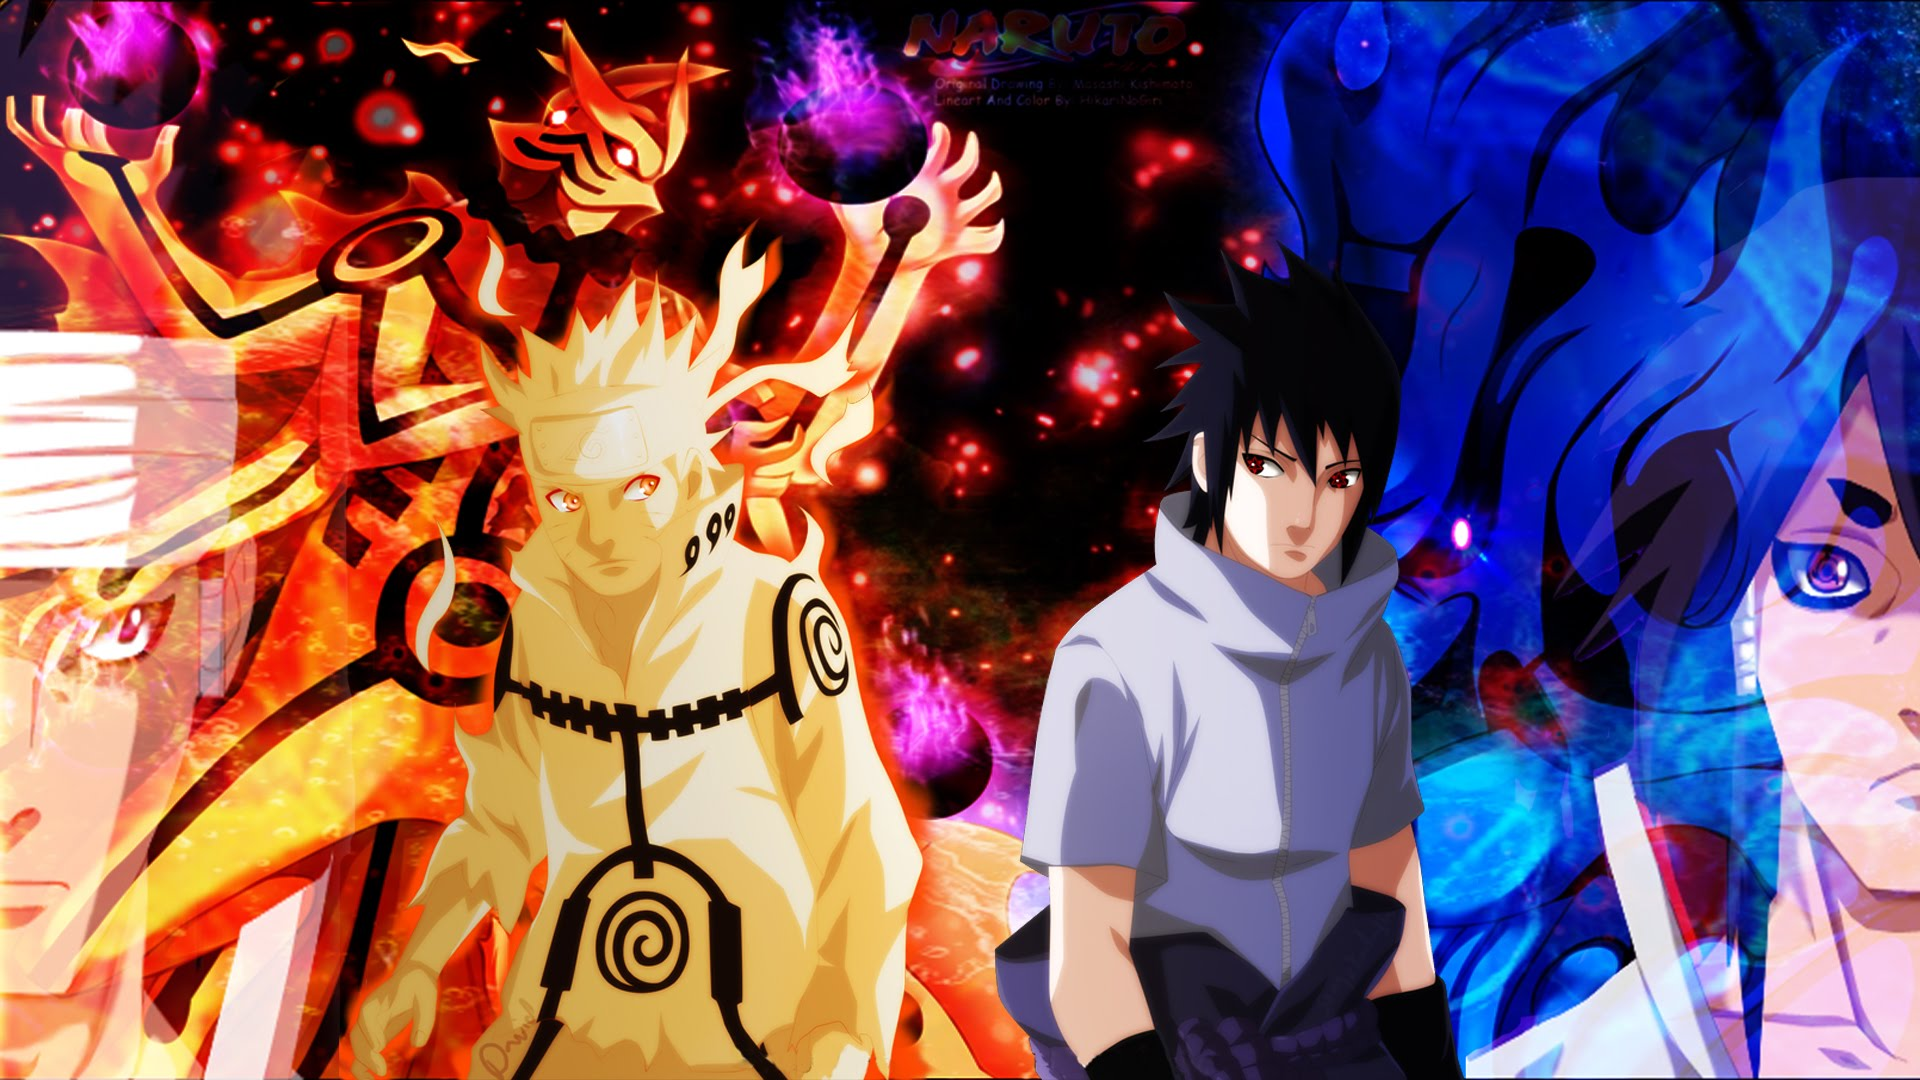 Naruto Battle Wallpapers Top Free Naruto Battle Backgrounds